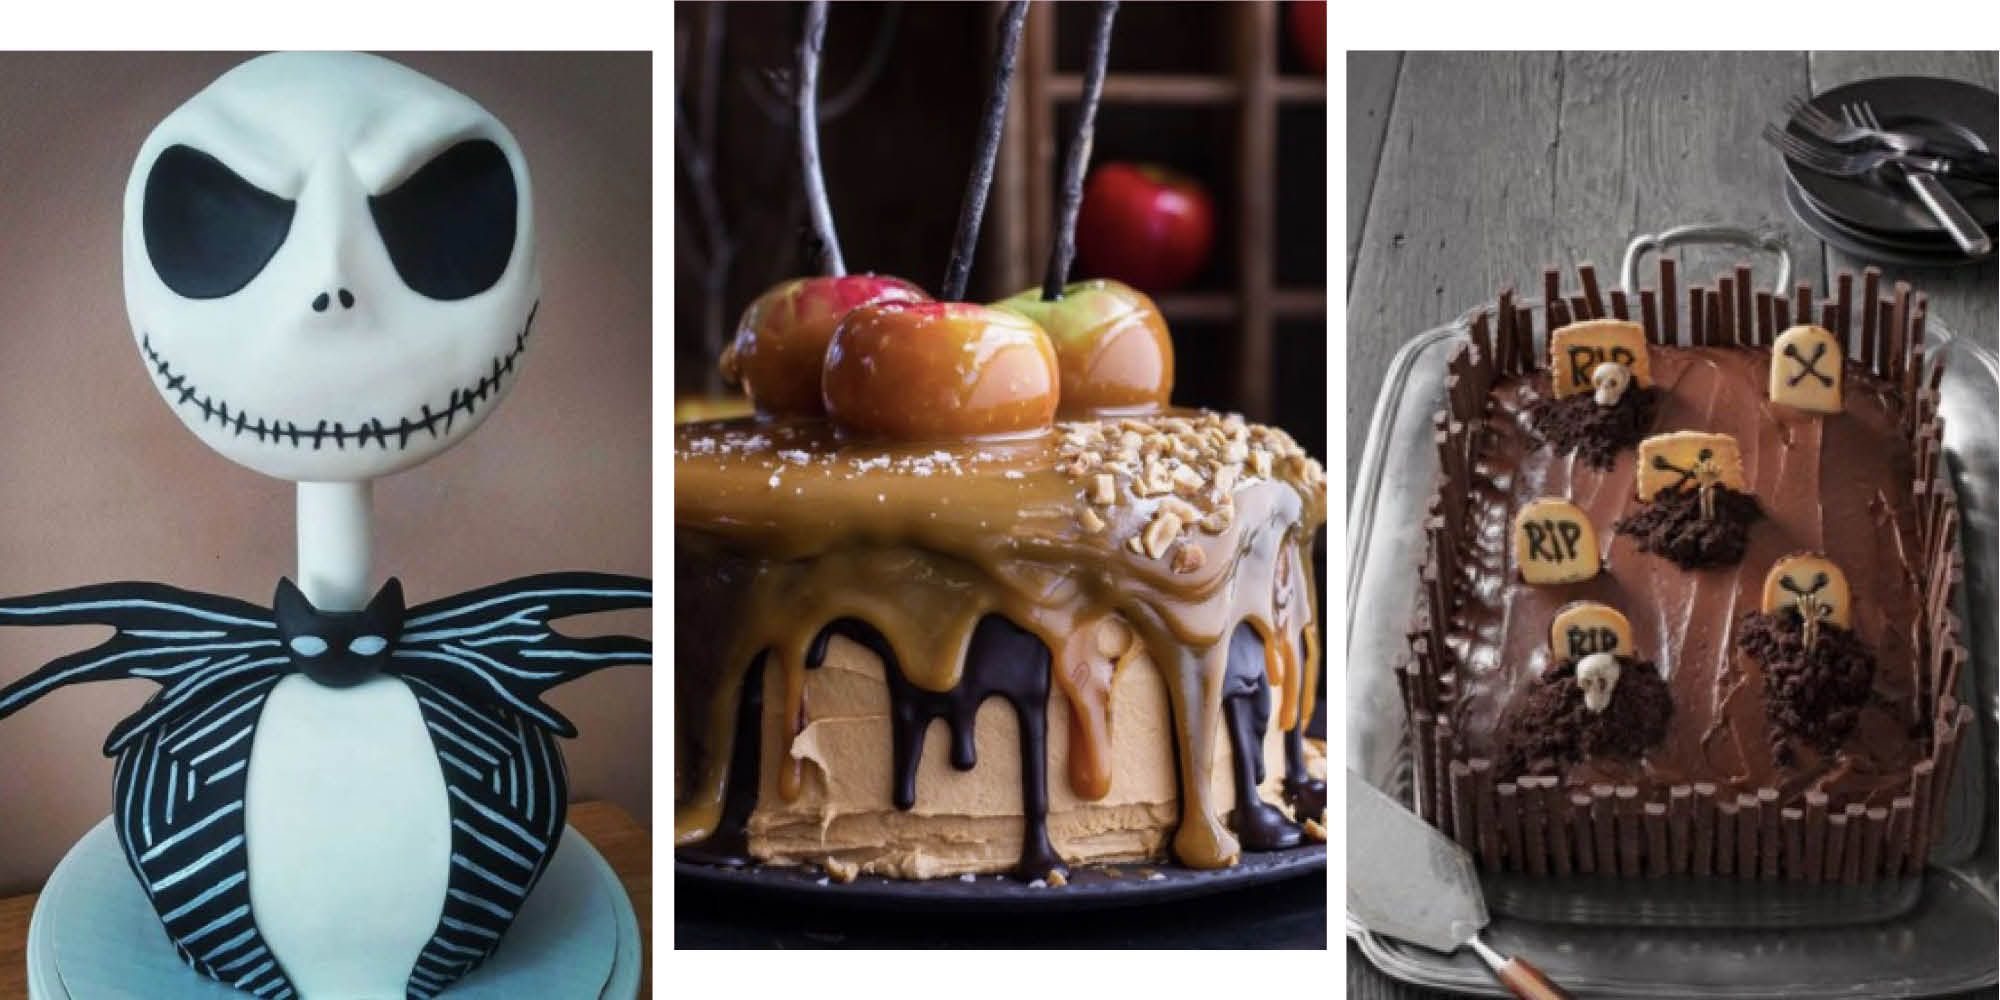 20 delicious Halloween cake recipes for the ultimate spooky treat